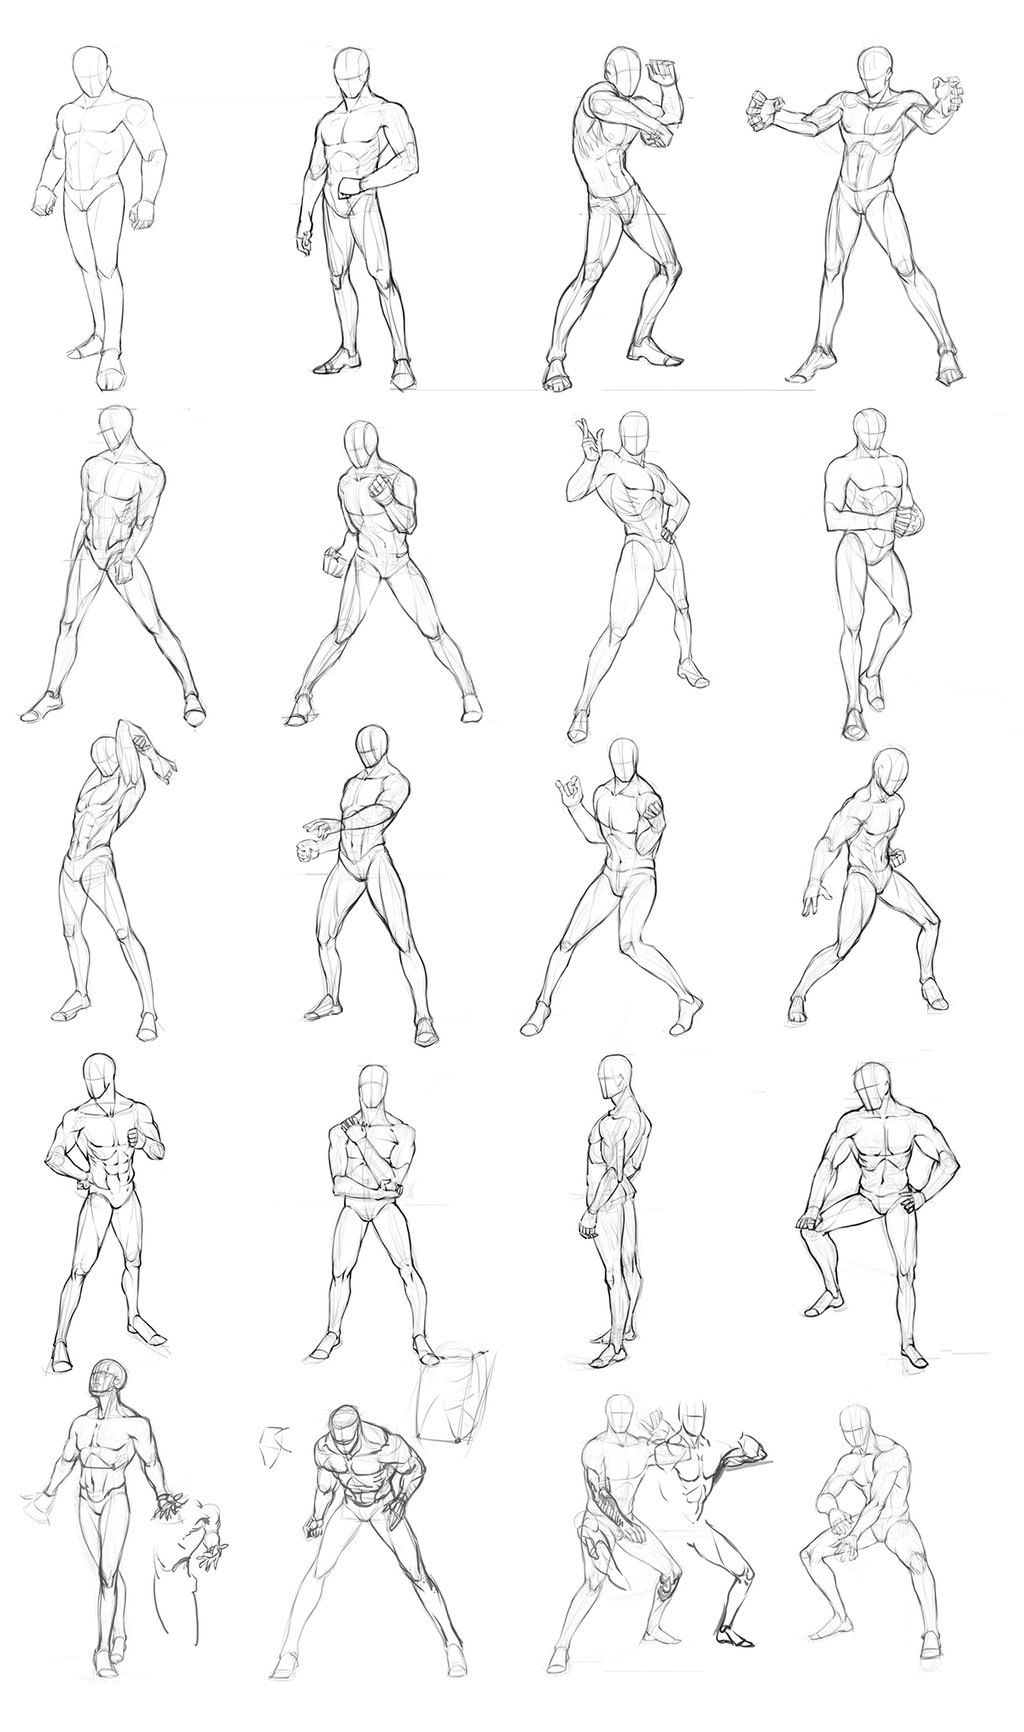 Pin by algae pearl on Art References | Male pose reference ...